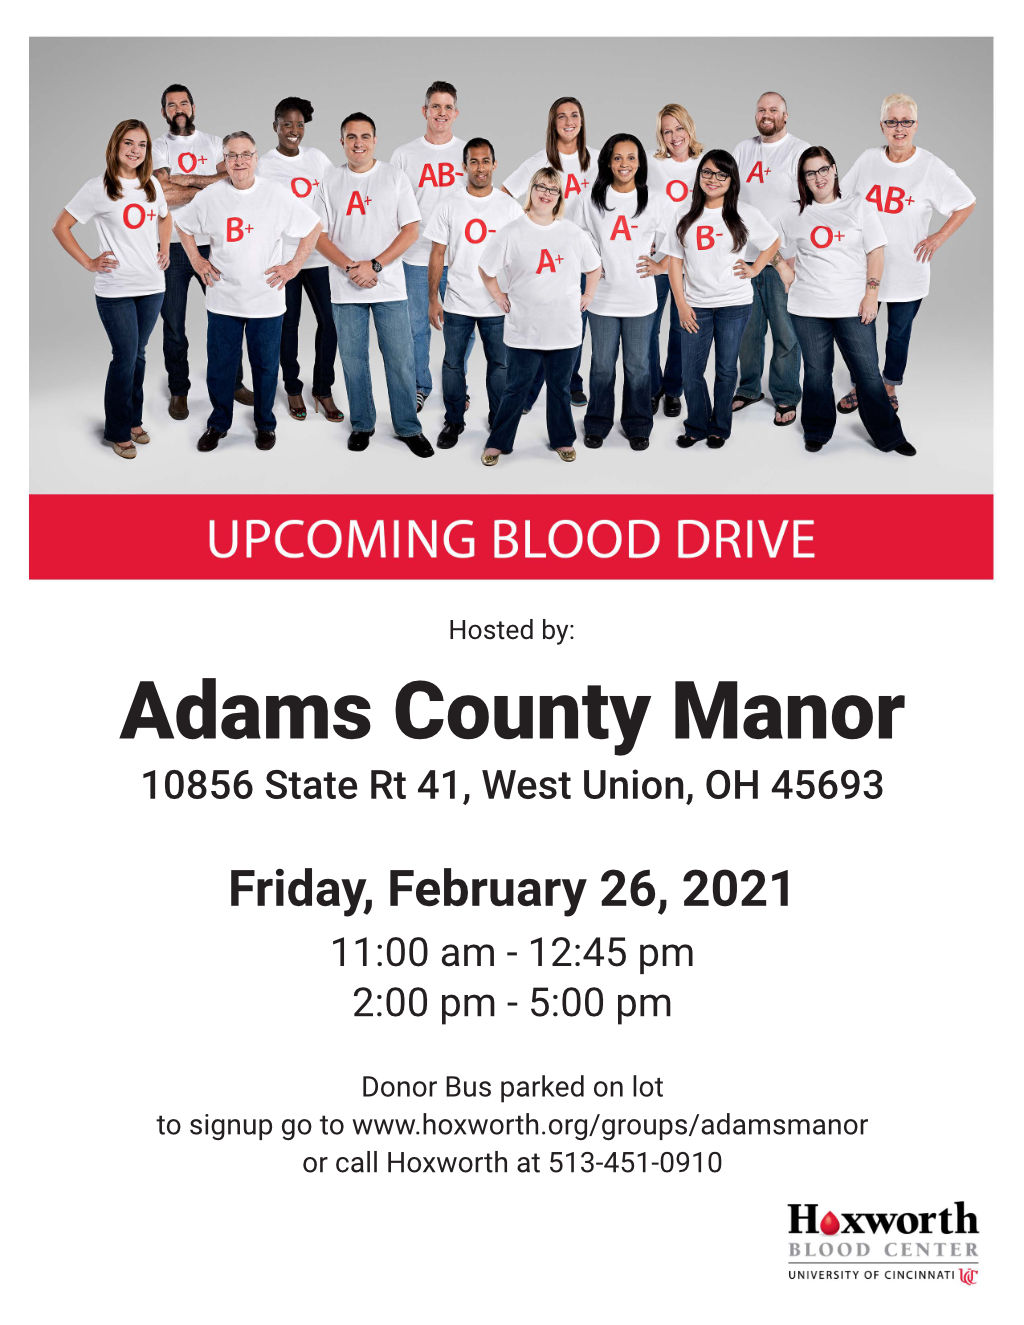 Join us February 26 for our blood drive at Adams County Manor!